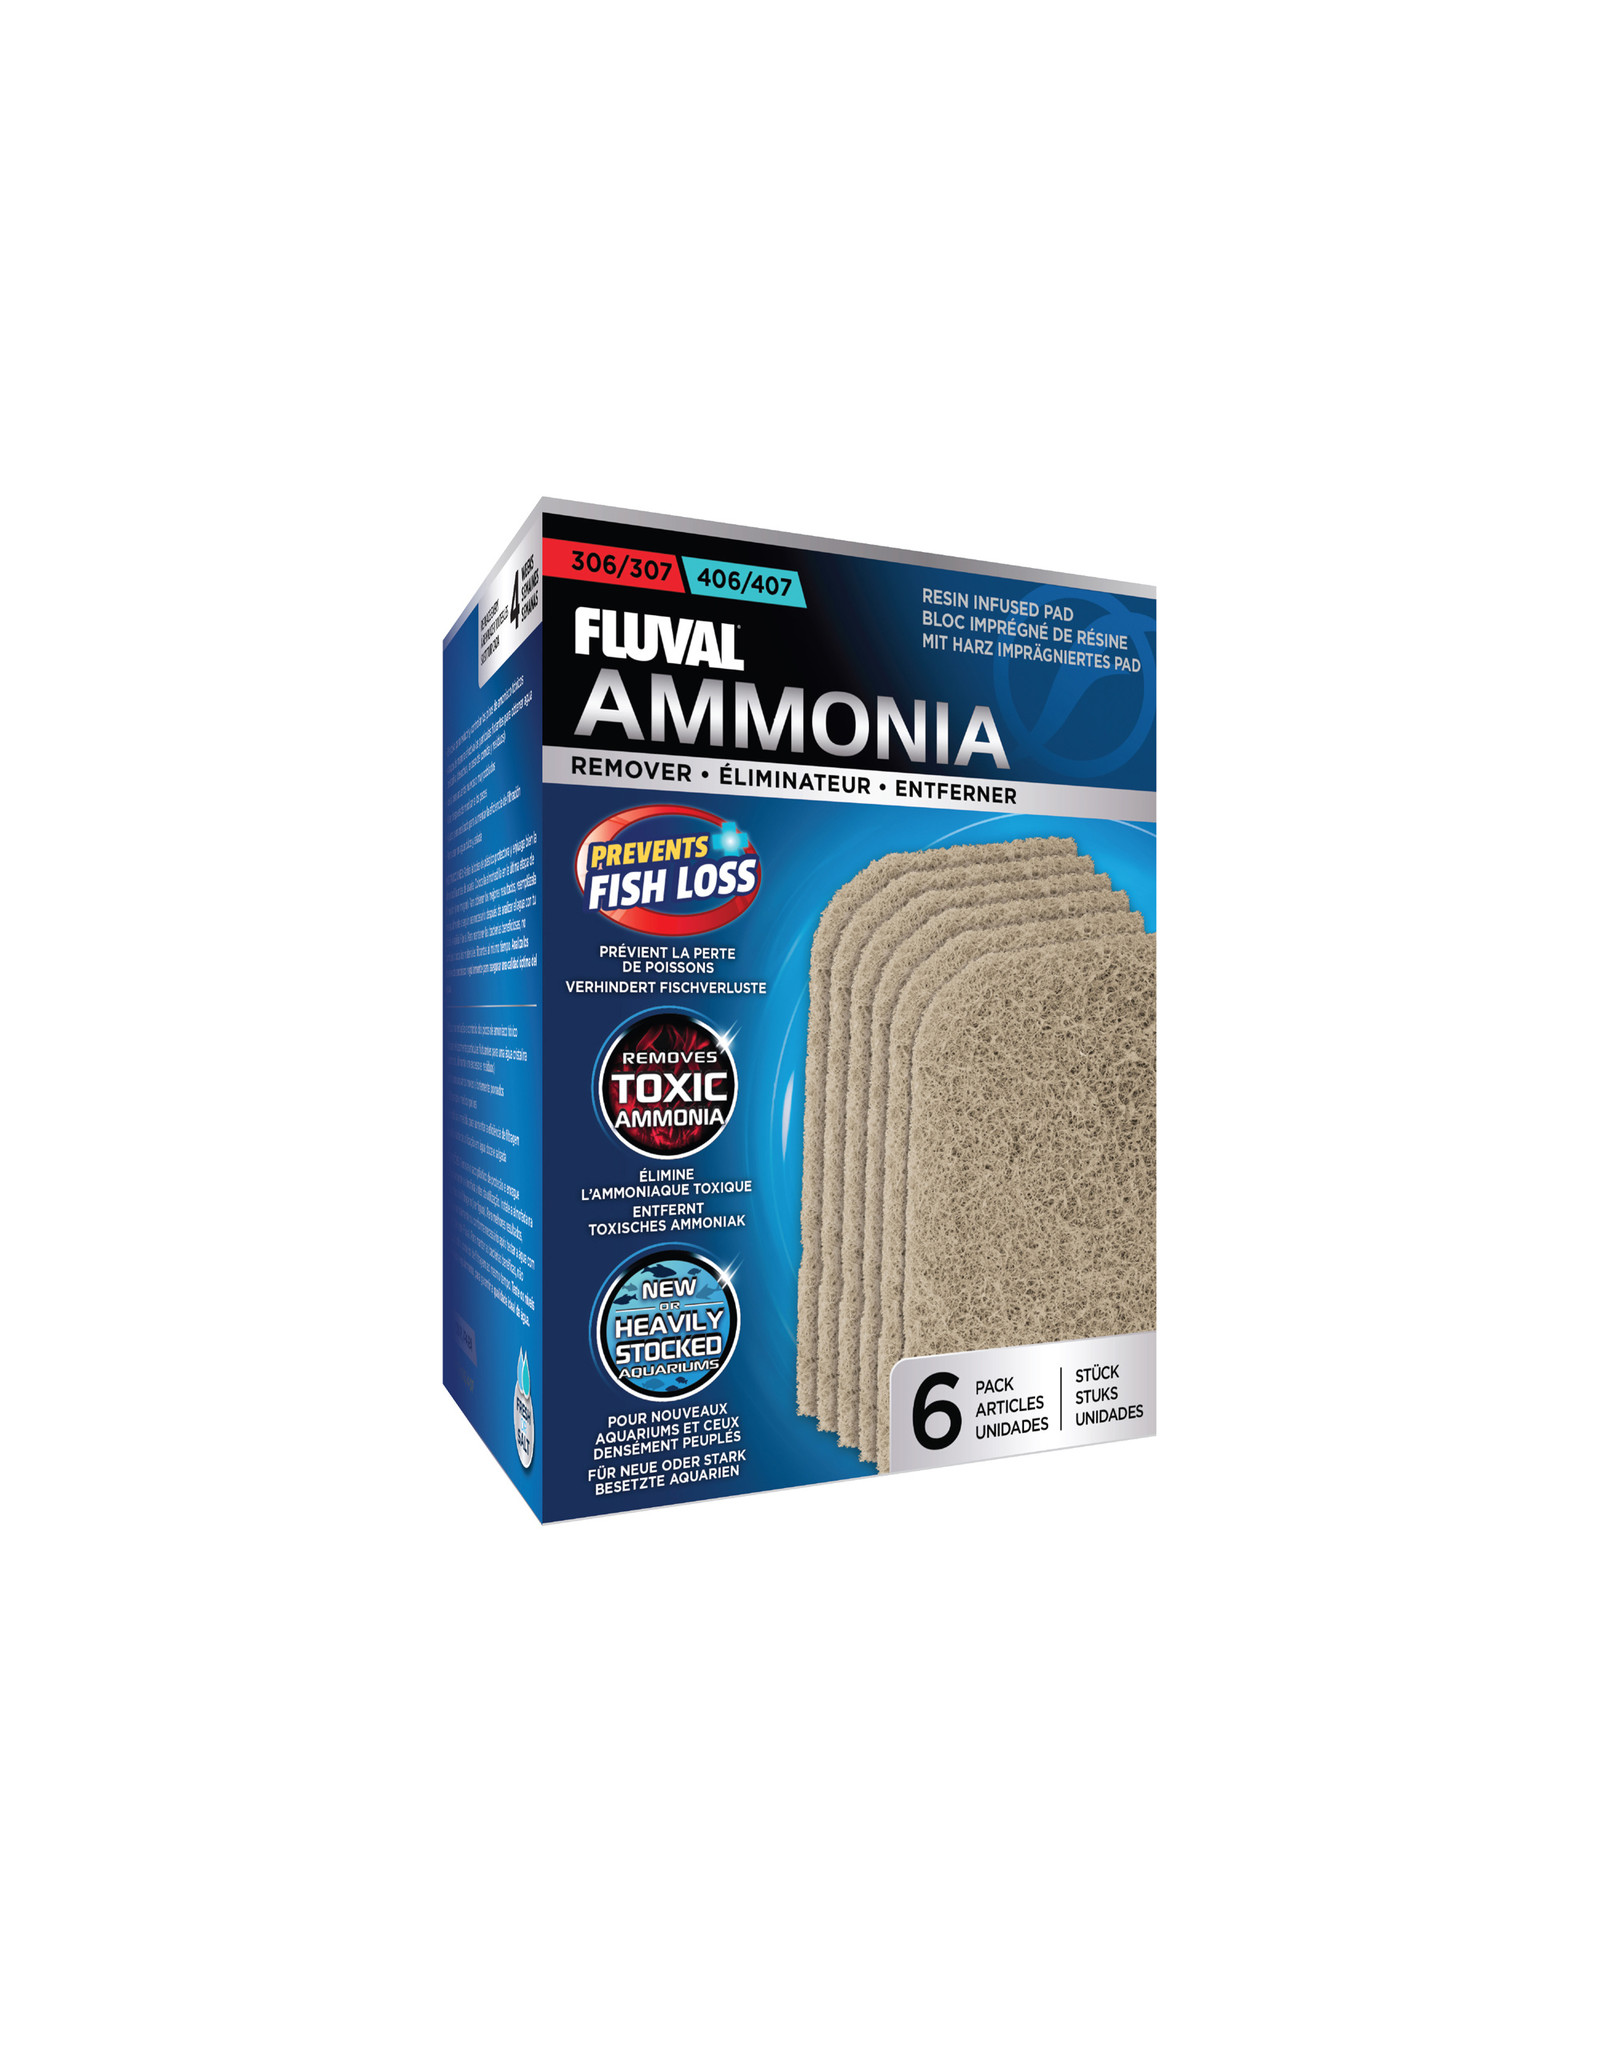 Fluval FLUVAL Replacement Filter Pad 306/307/406/407 6 Pack